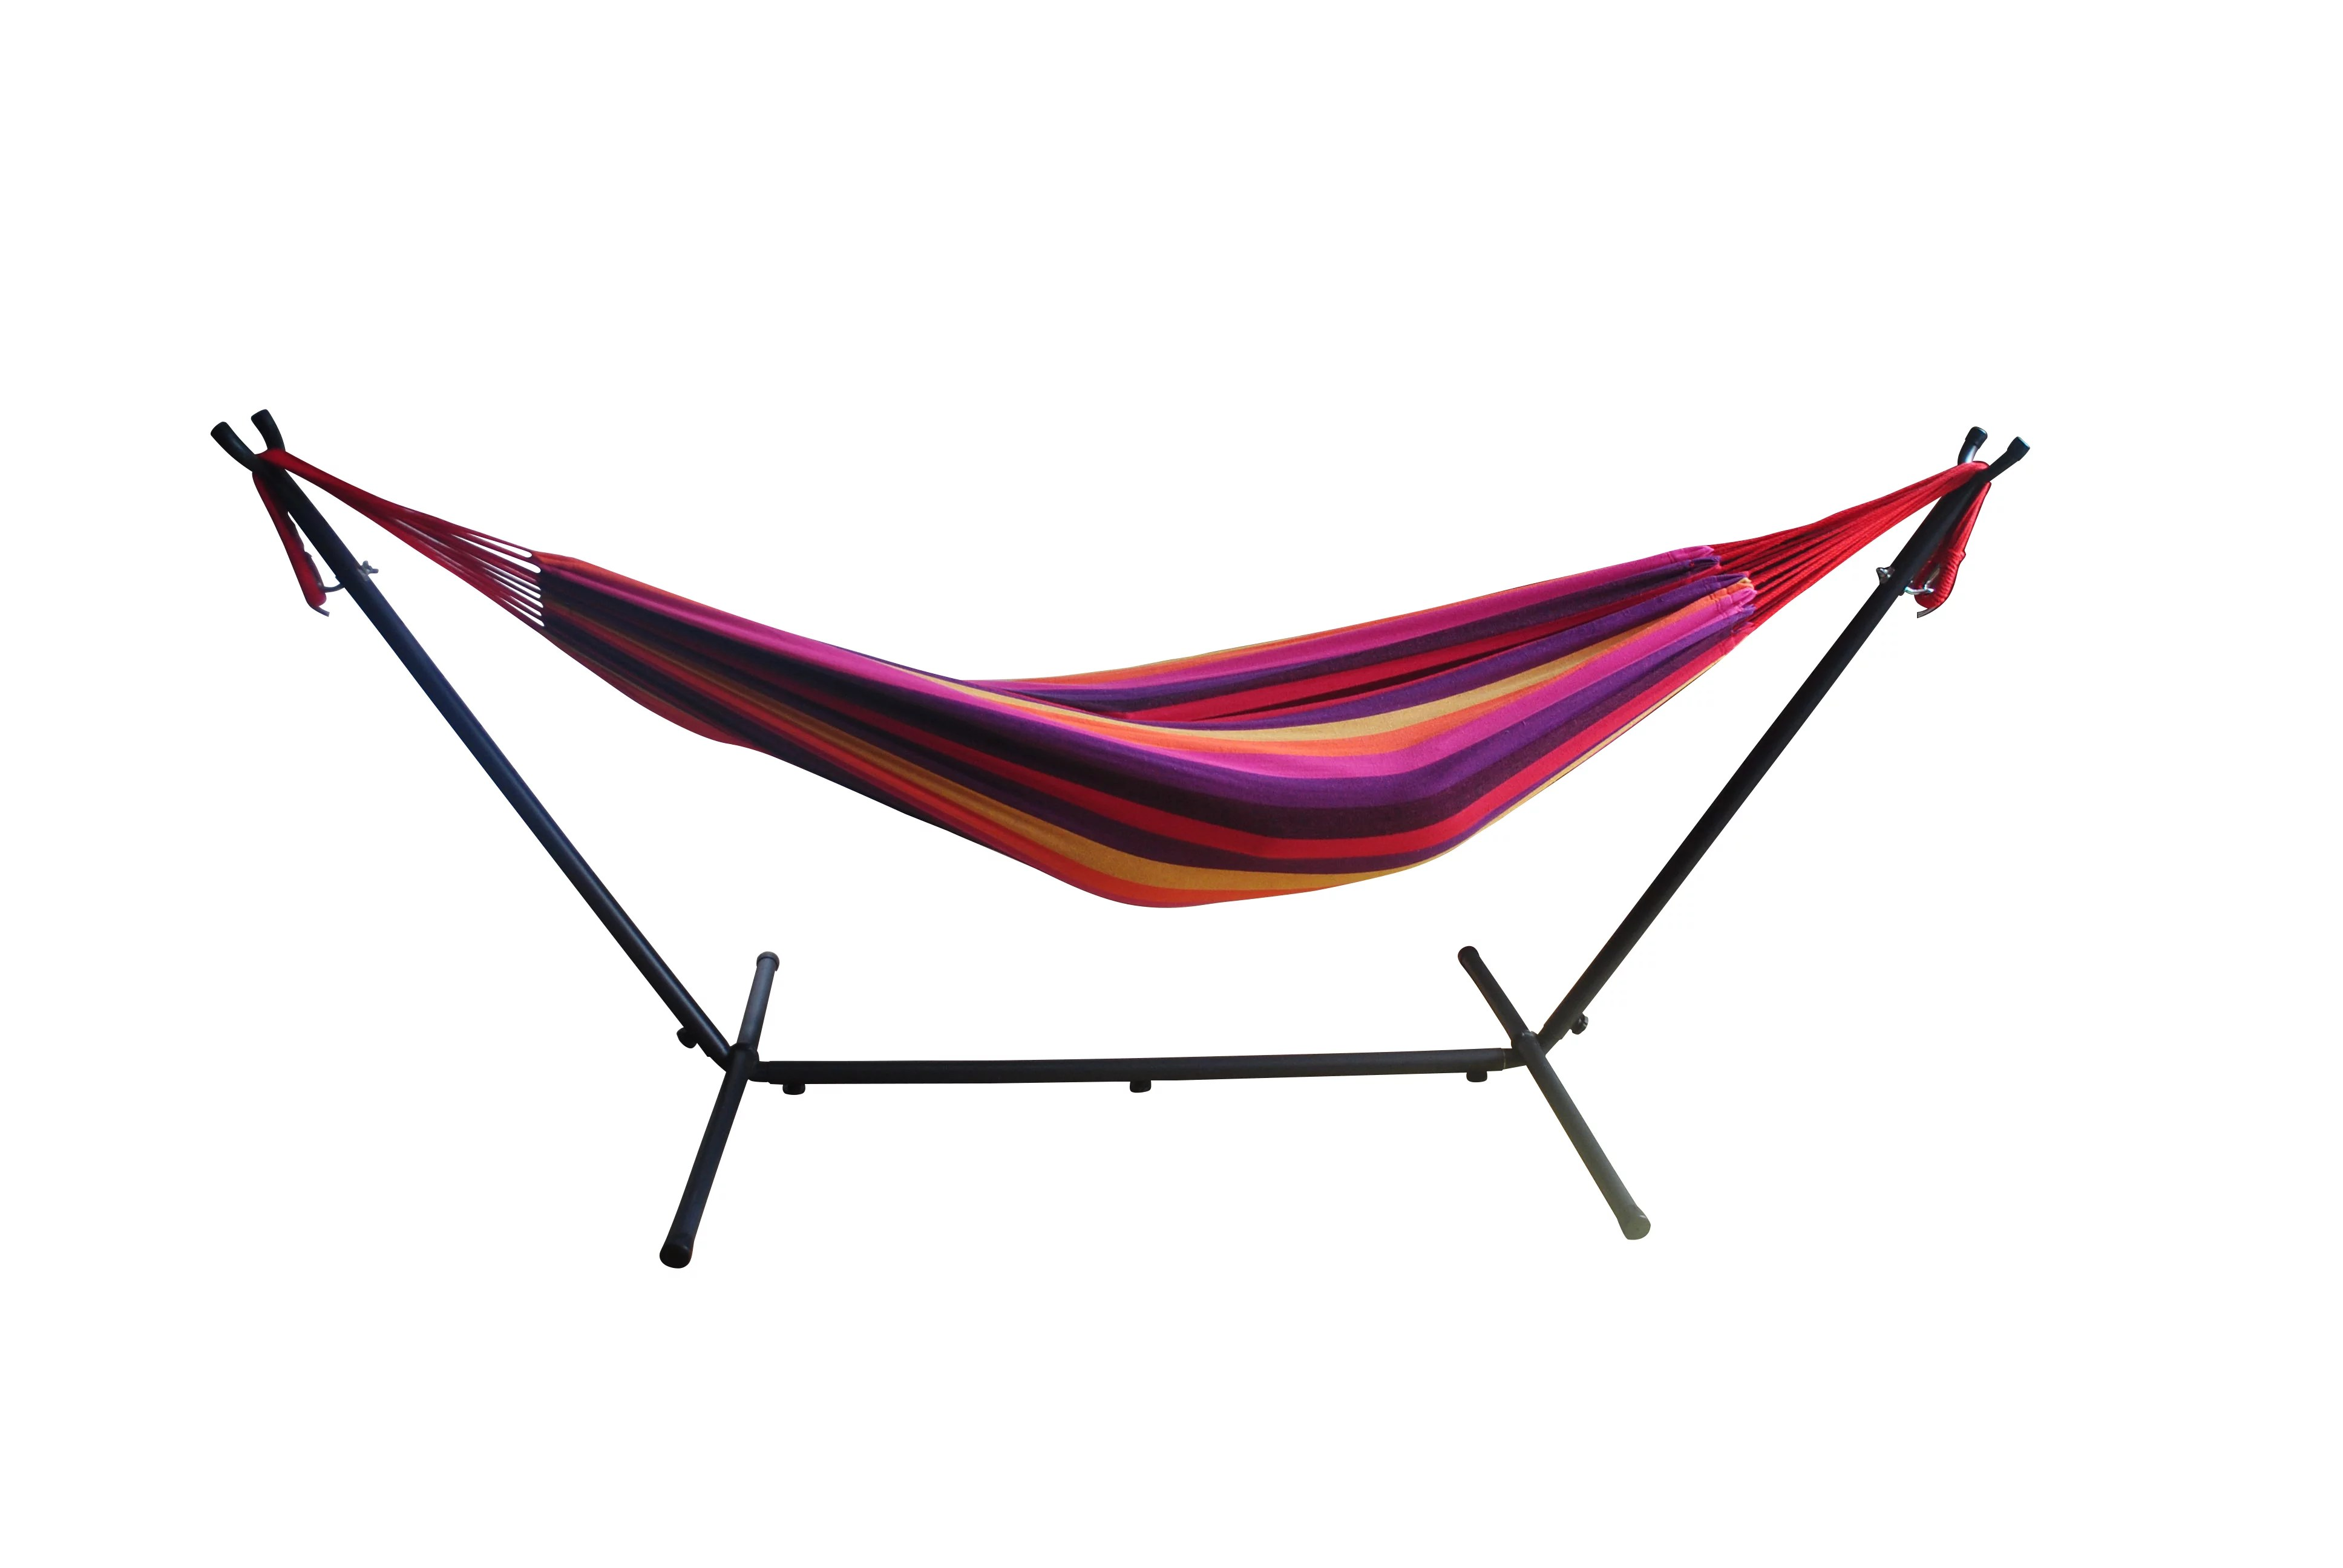 Mainstays Striped Hammock With Metal Stand Deluxe Set